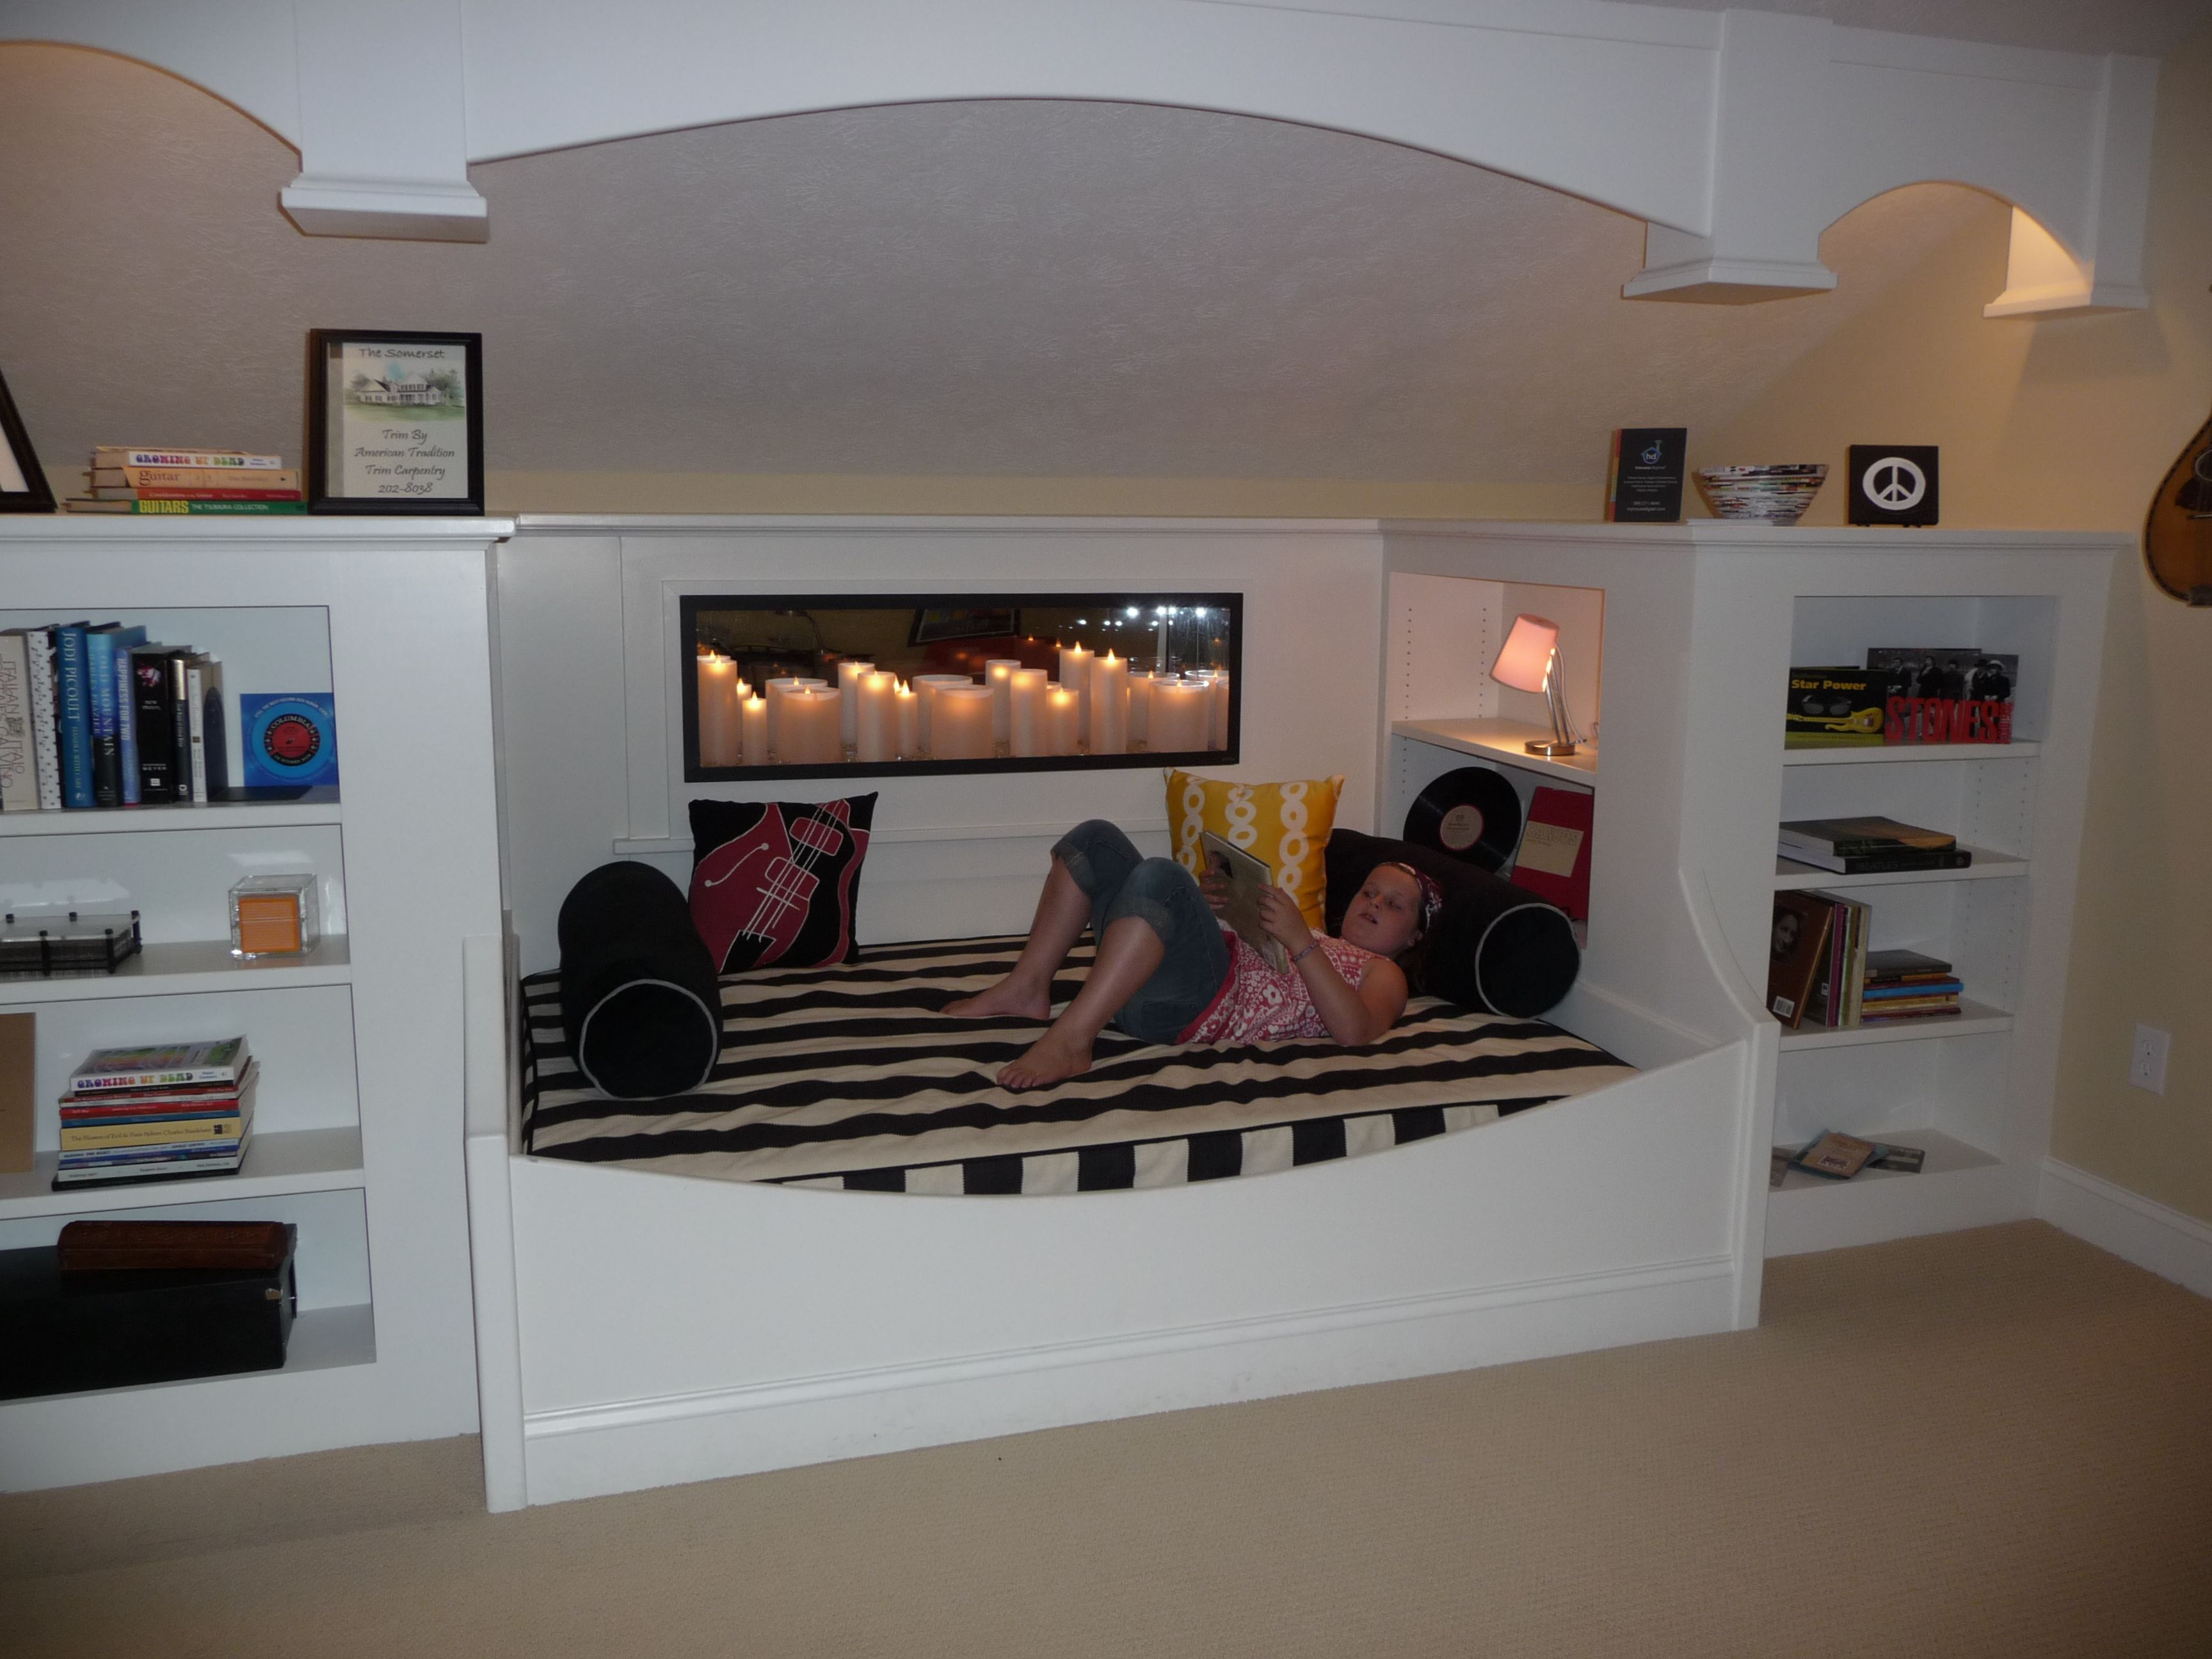 Teen Suite Equipped With Built In Daybed And Wall Candle